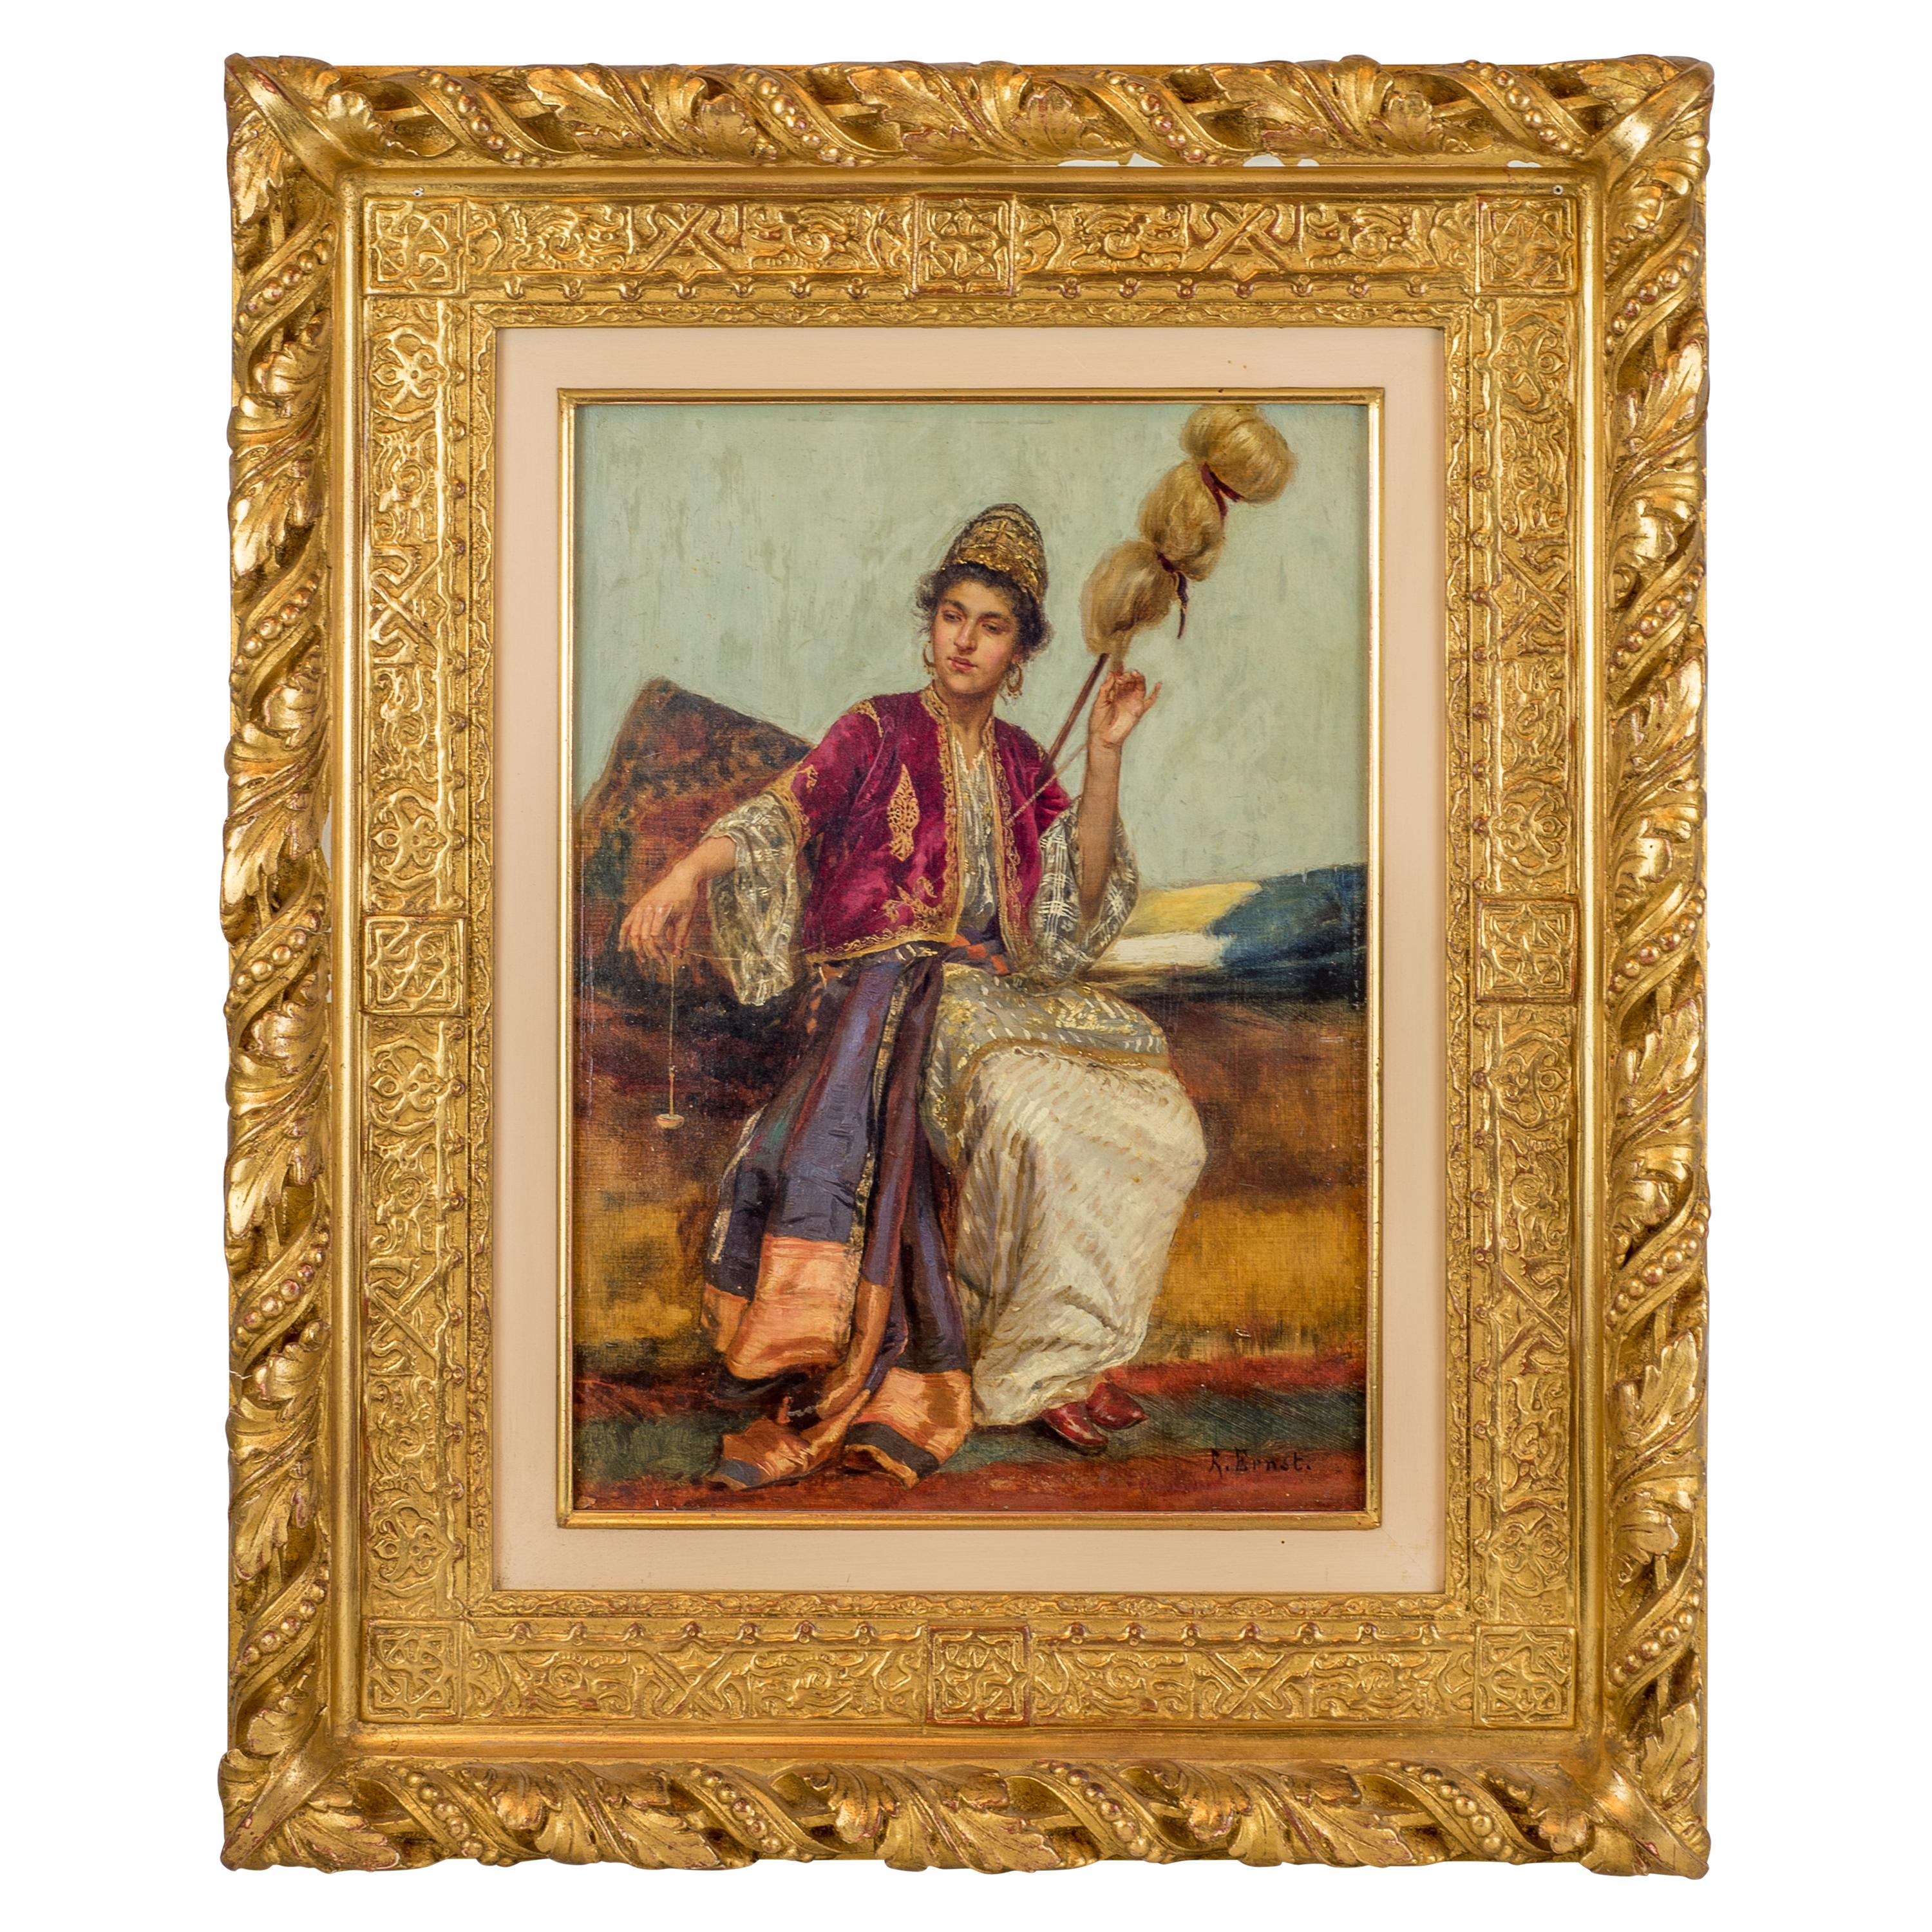 Original Orientalist Oil Painting of a Young Weaver by Rudolf Ernst